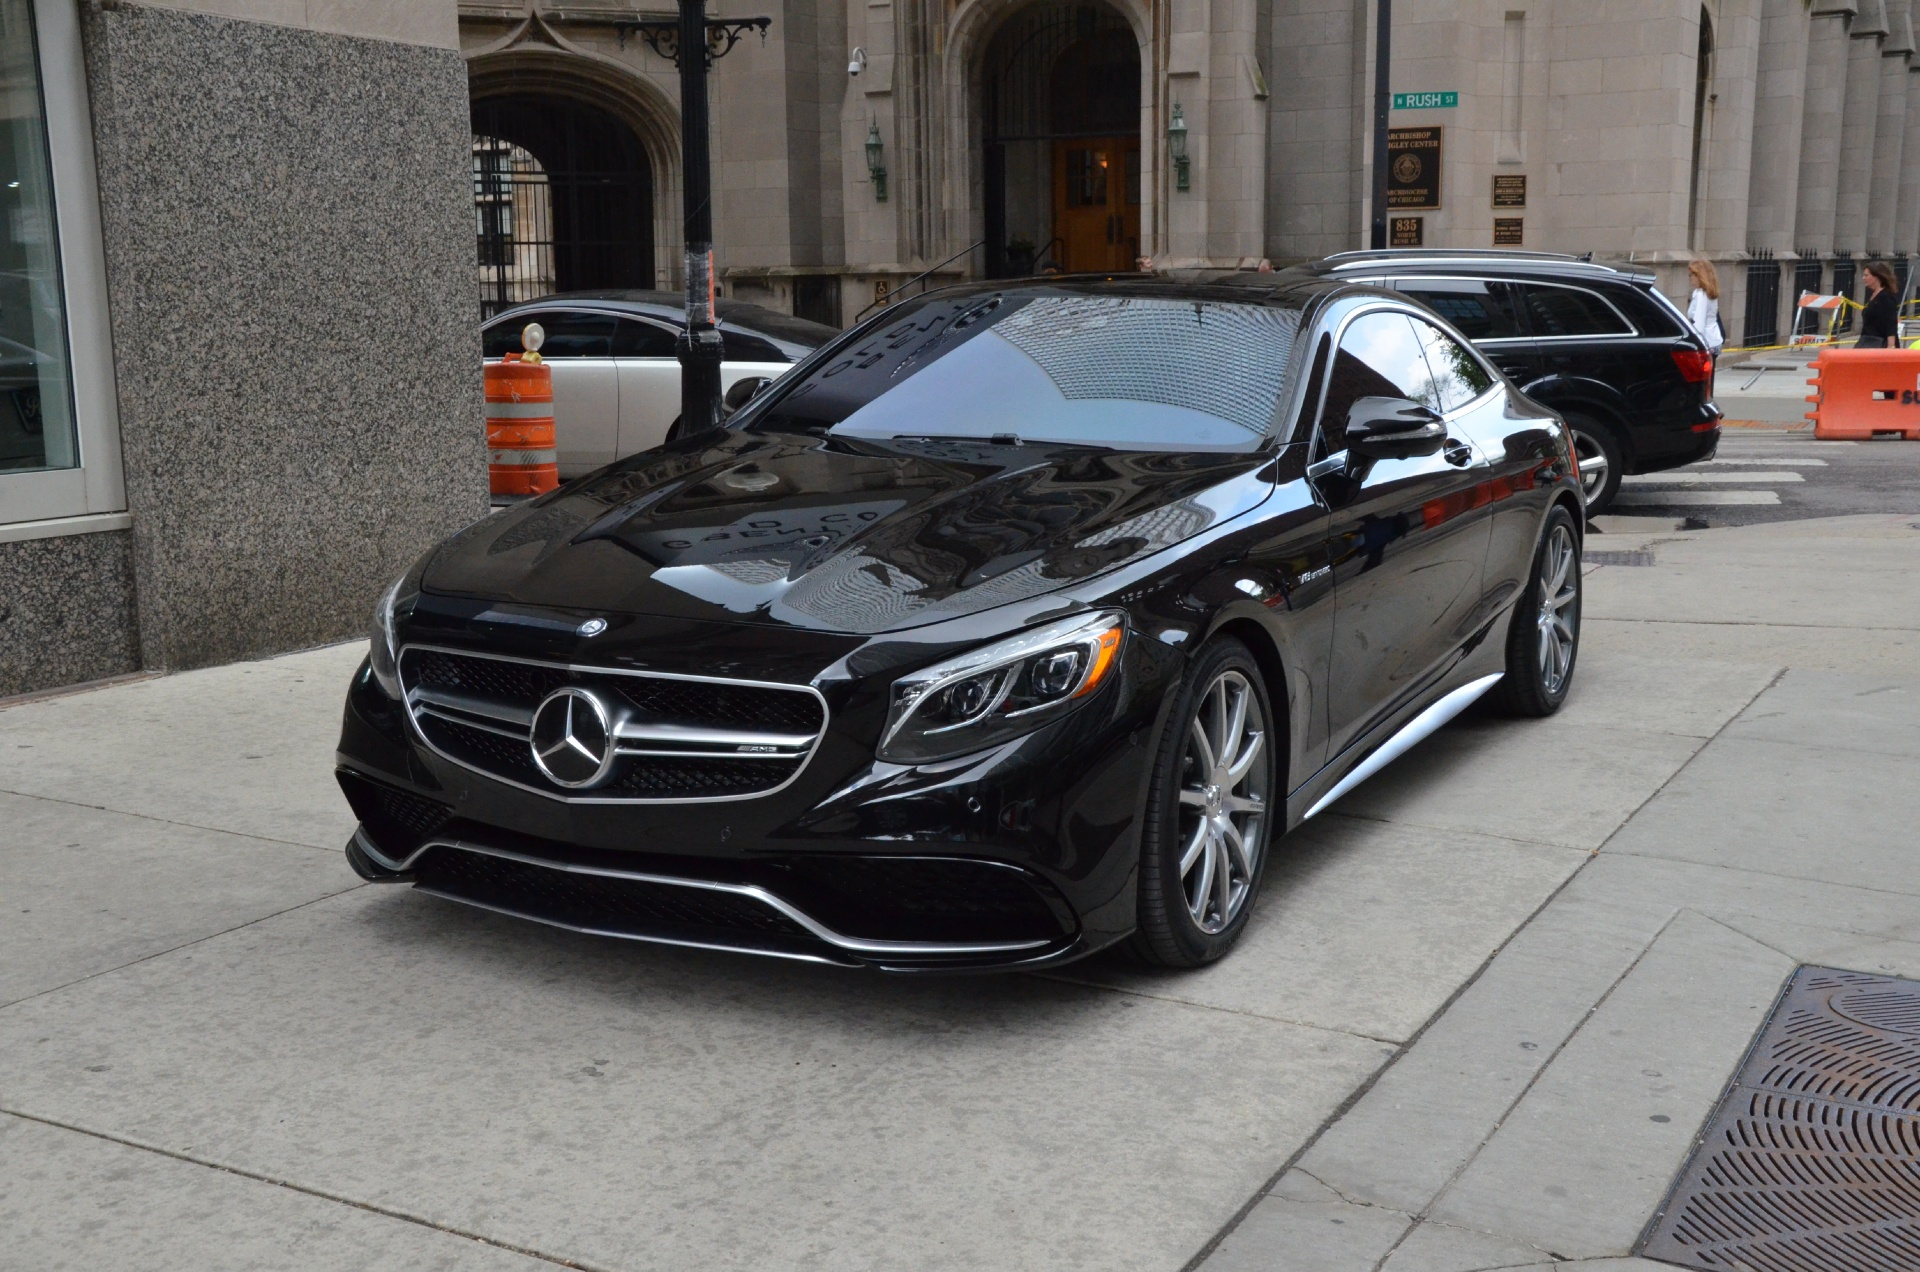 2015 mercedes benz s class s63 amg used bentley used for Mercedes benz s class s63 amg